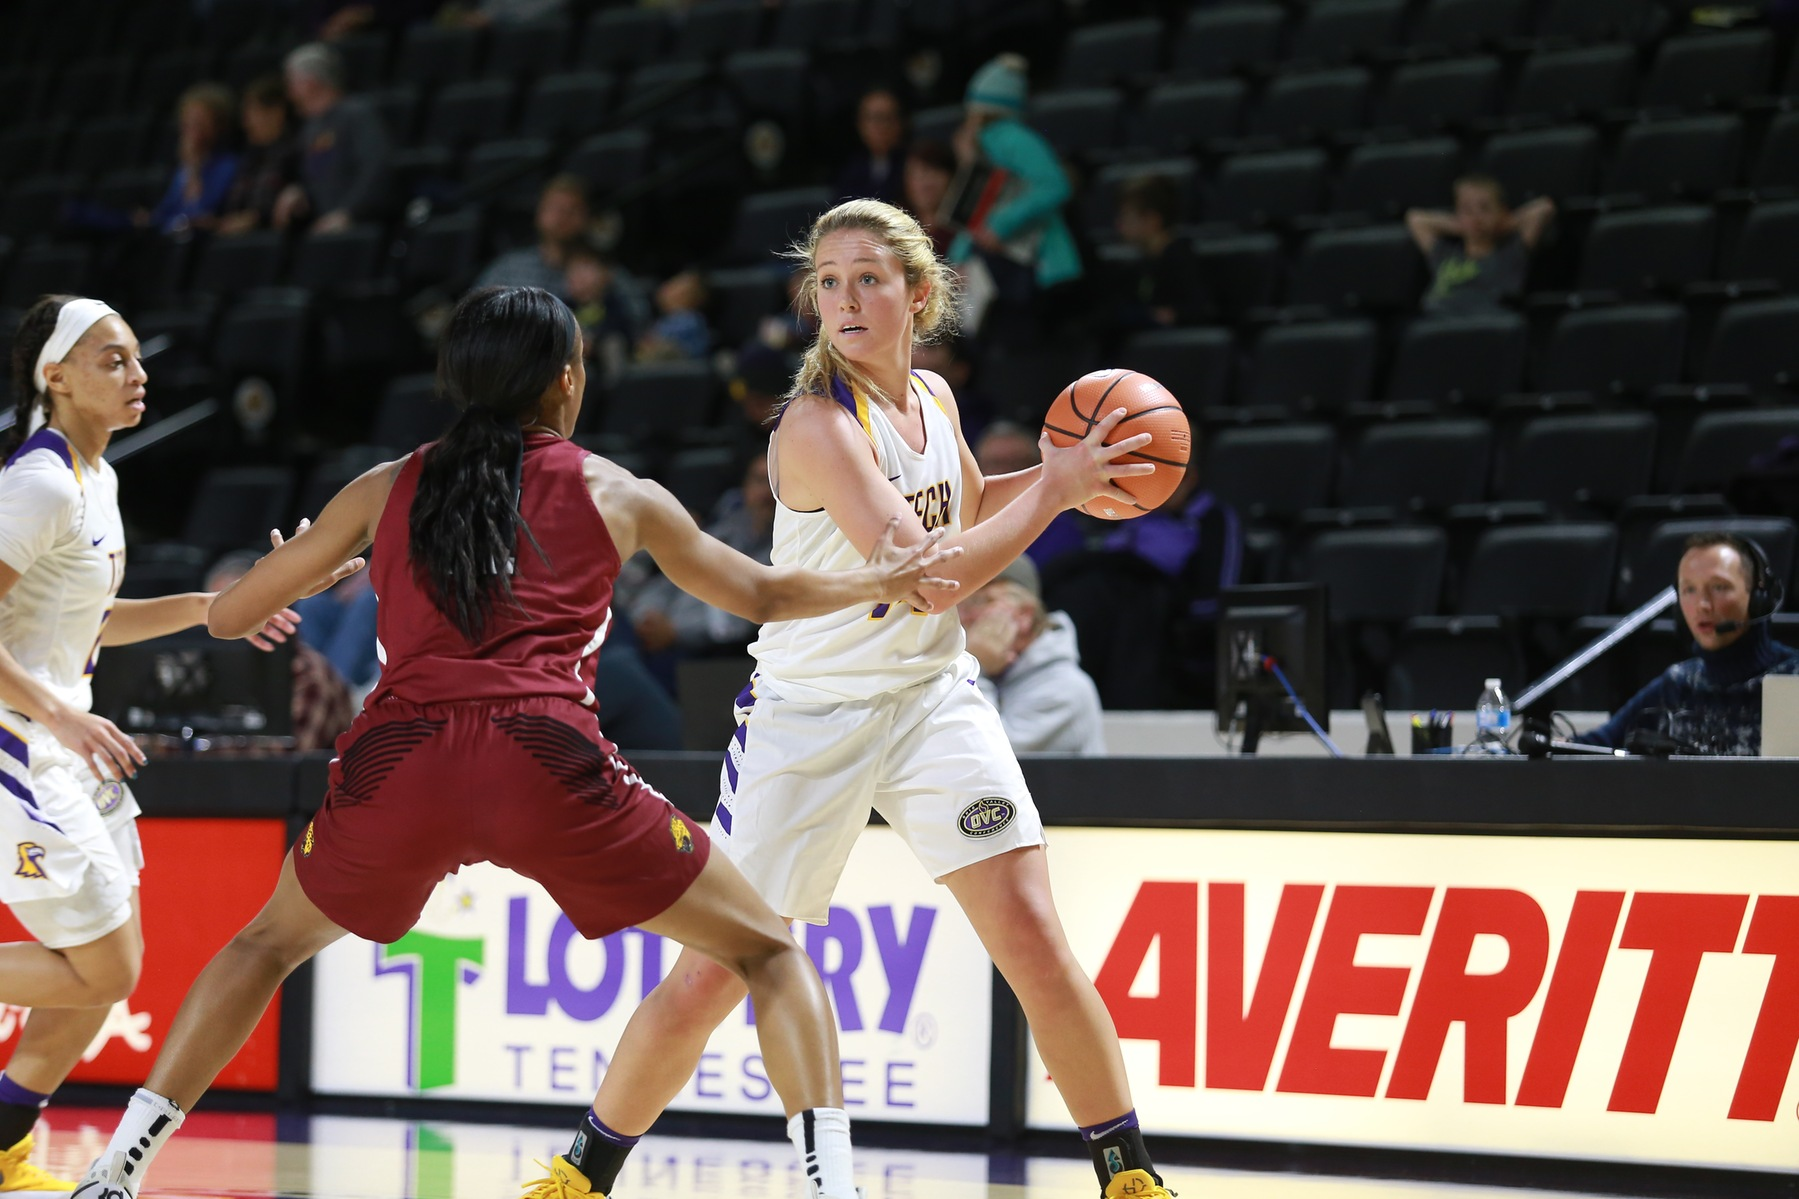 Tech ends non-conference schedule this week with Winthrop, Lipscomb